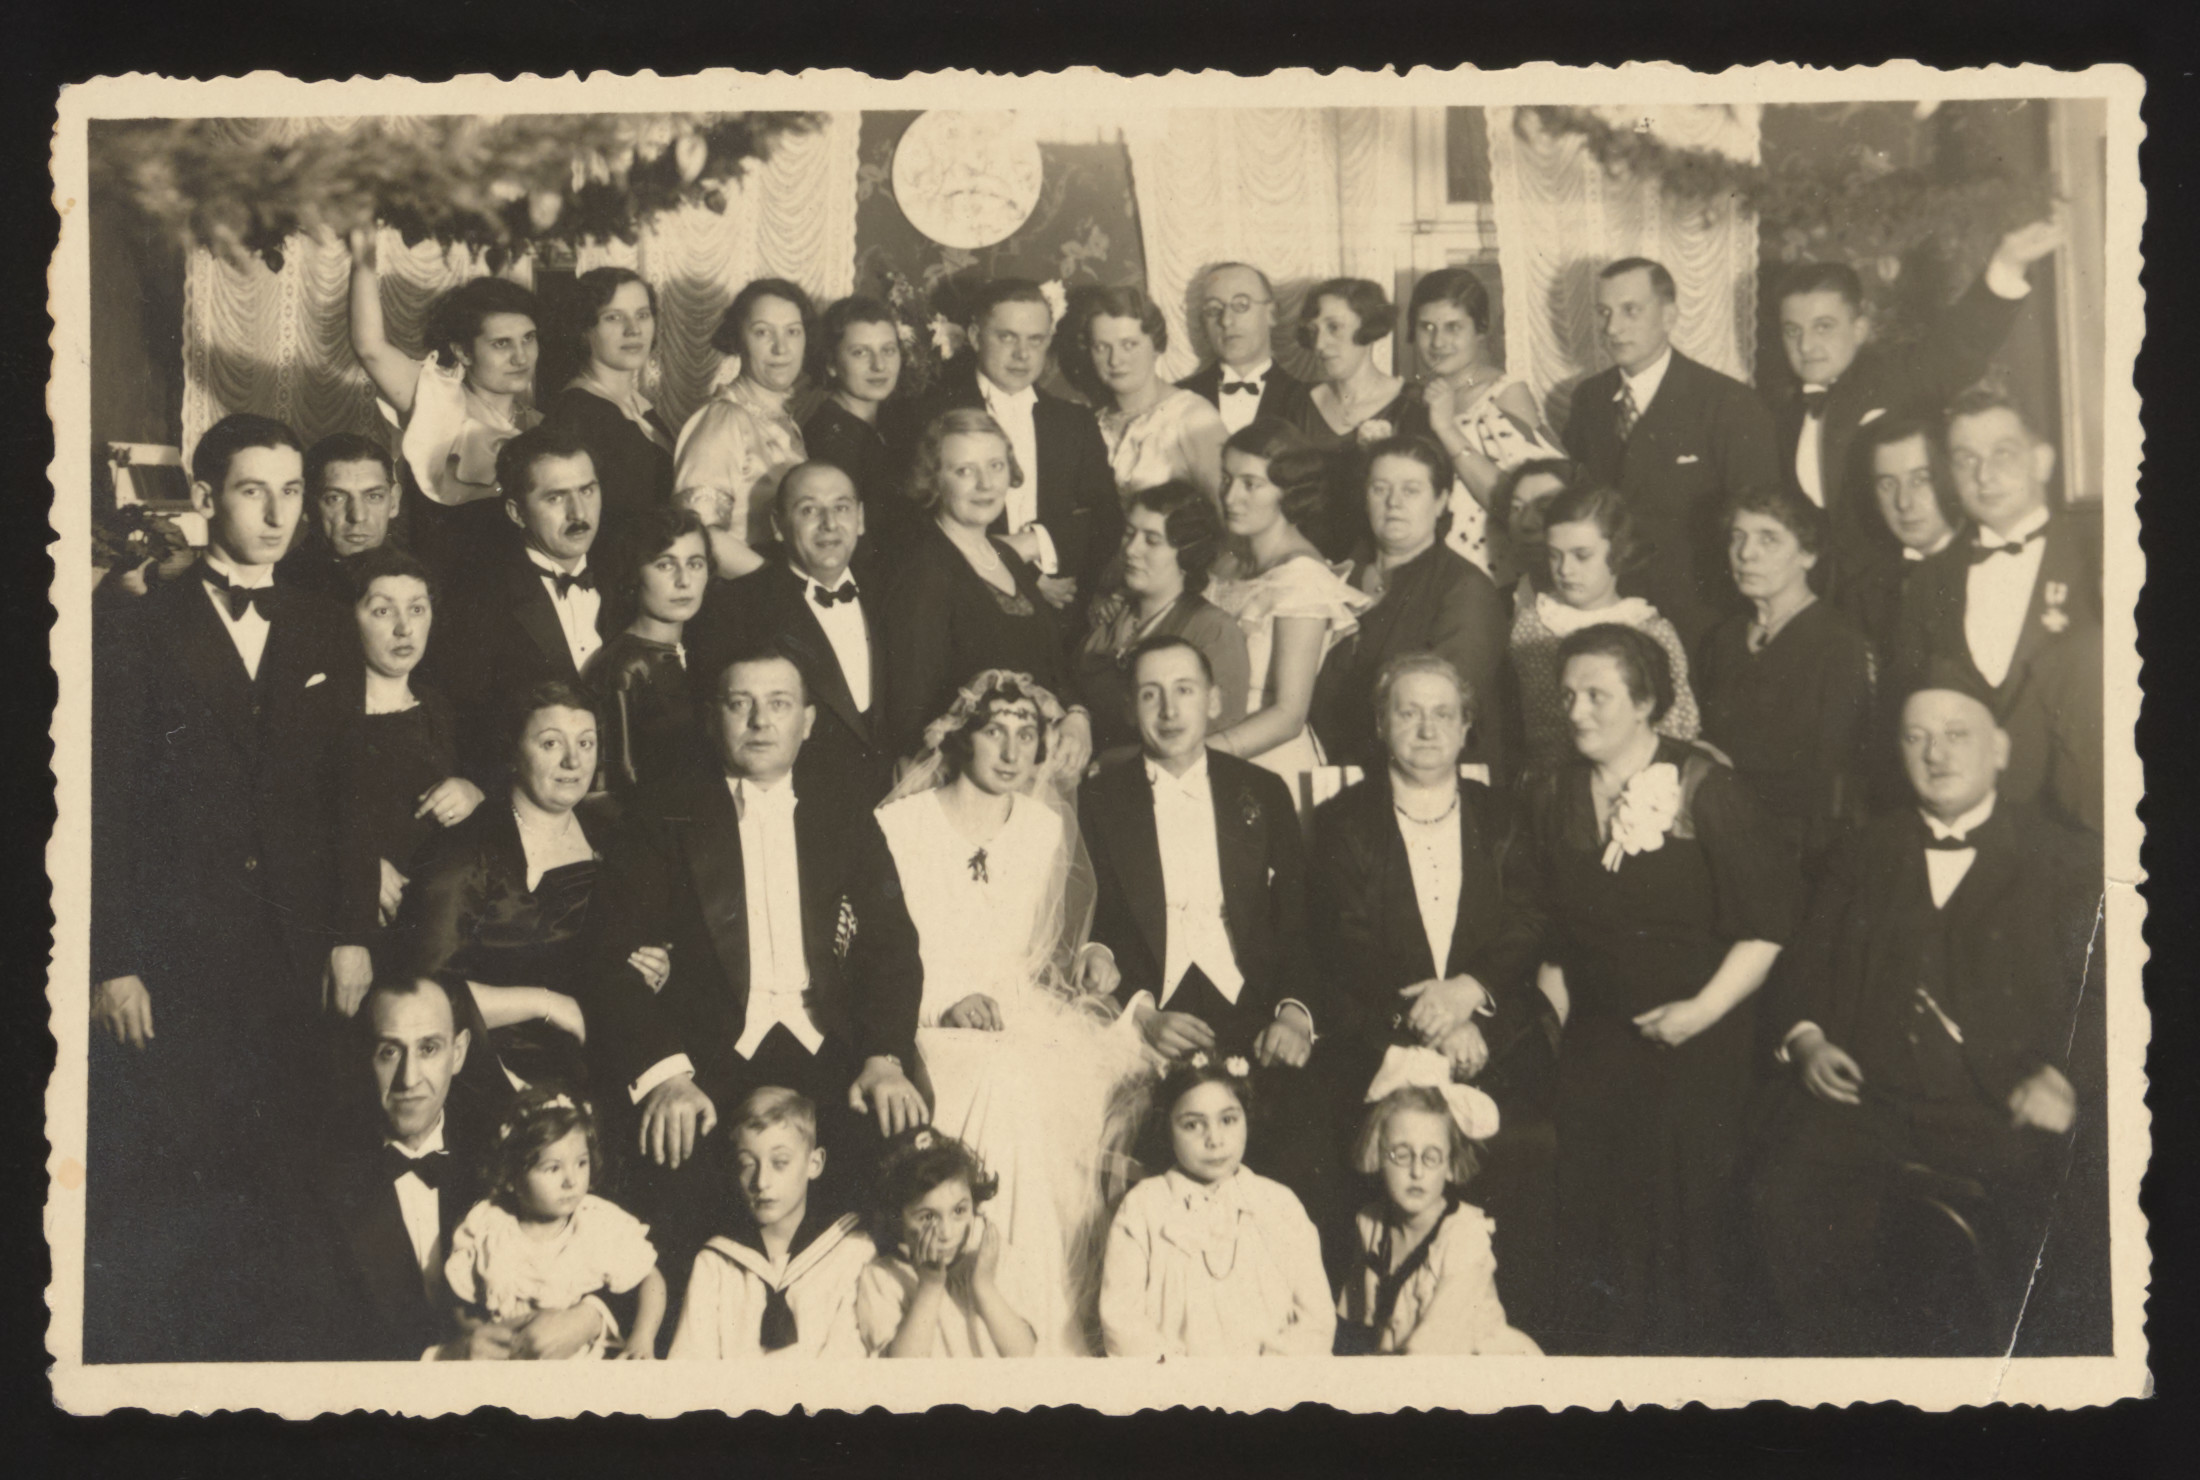 Friends and family celebrate the wedding of a member of the Isaacsohn family.  Rolf Isaacsohn is standing on the left.